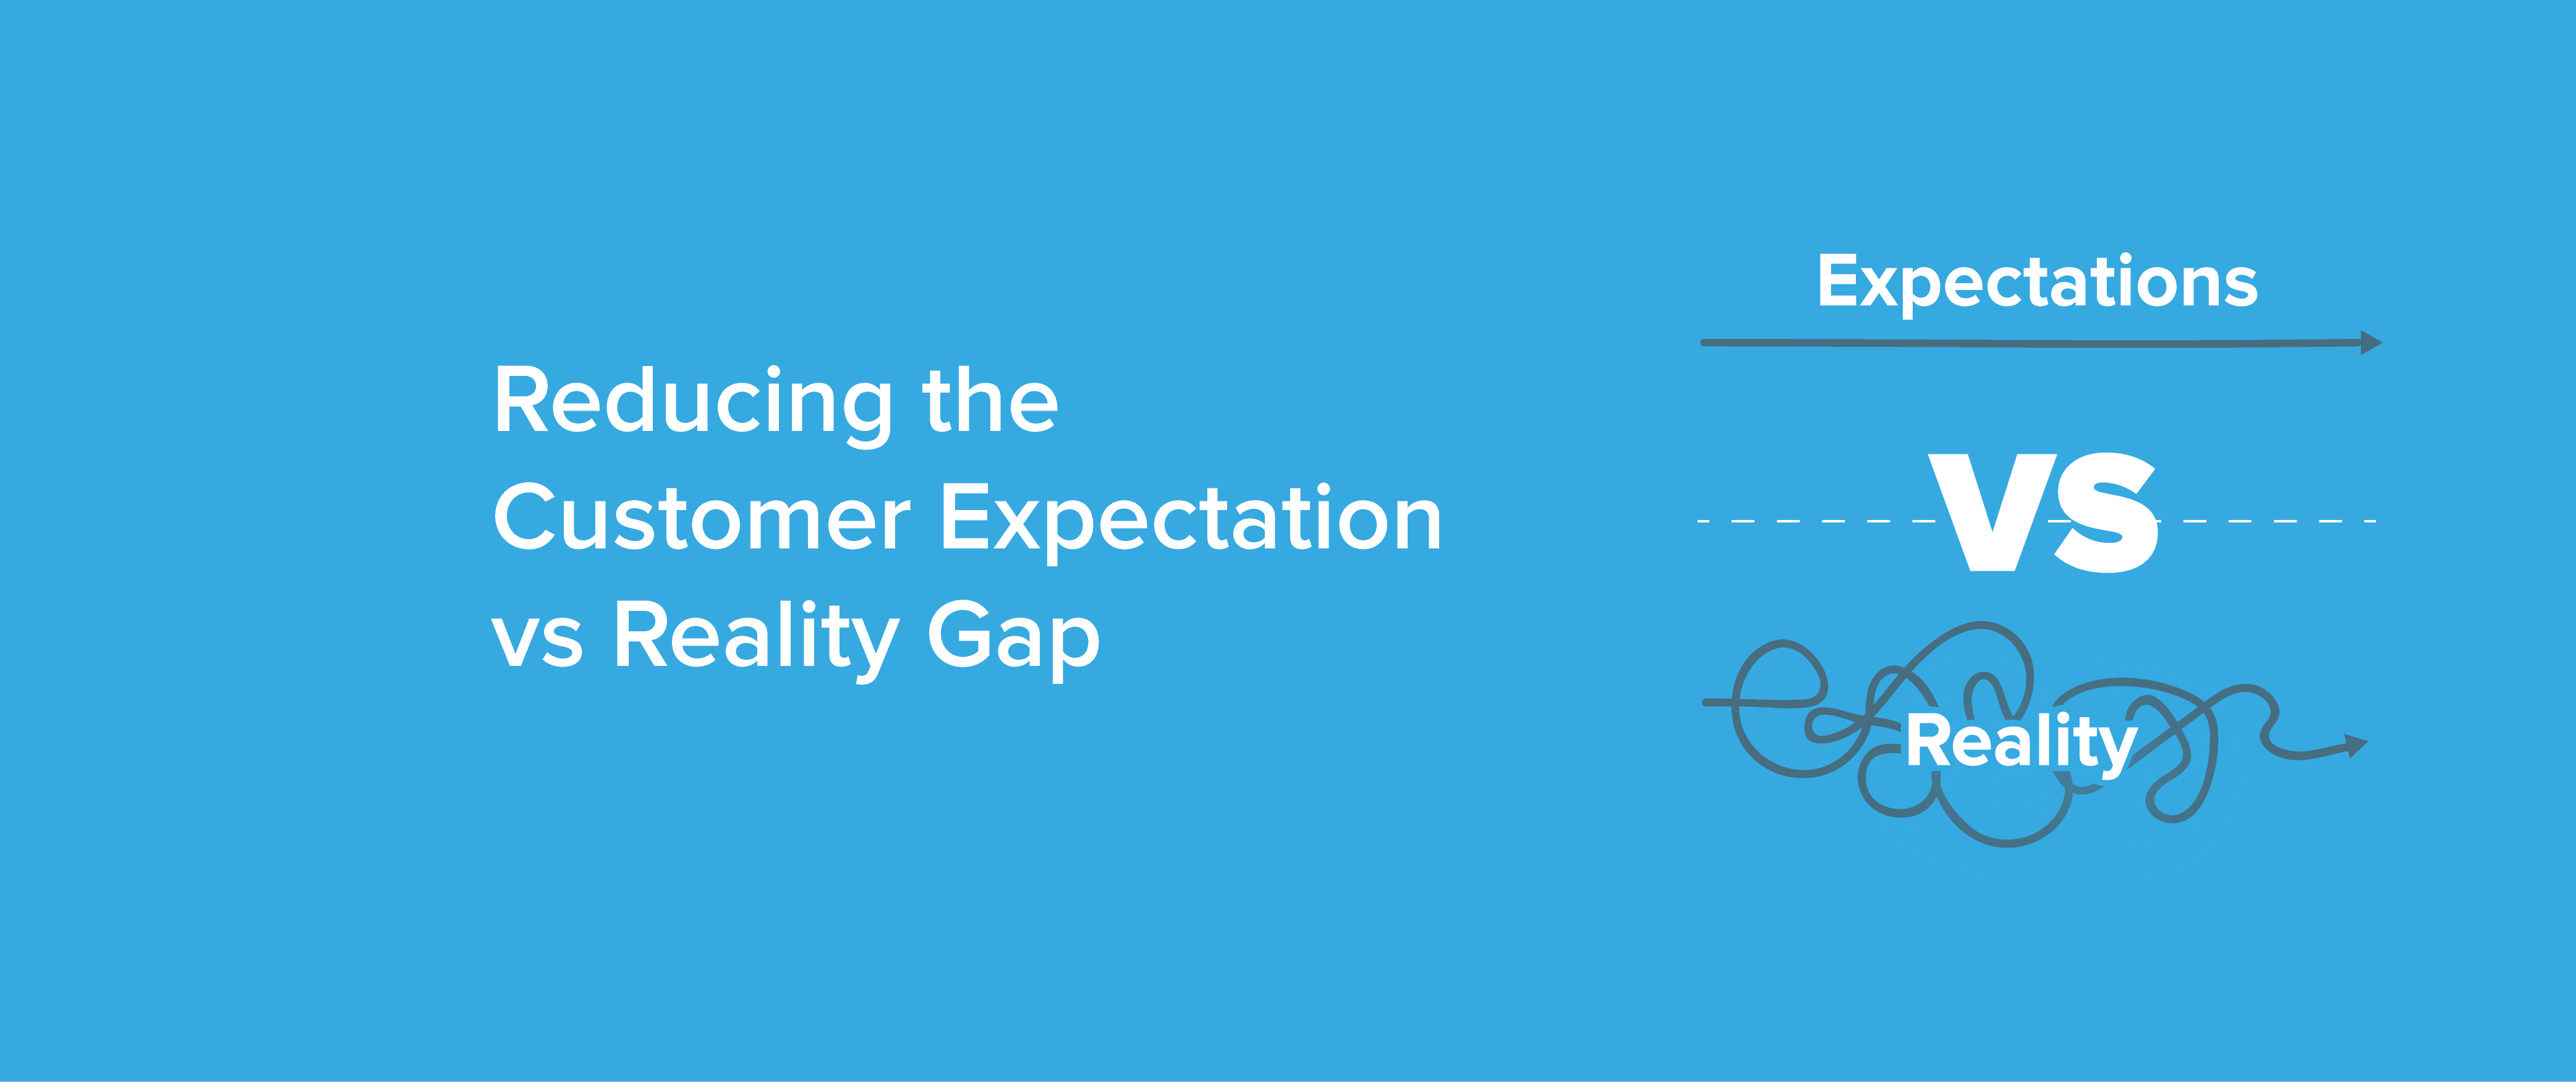 Reducing the Customer Expectation vs Reality Gap